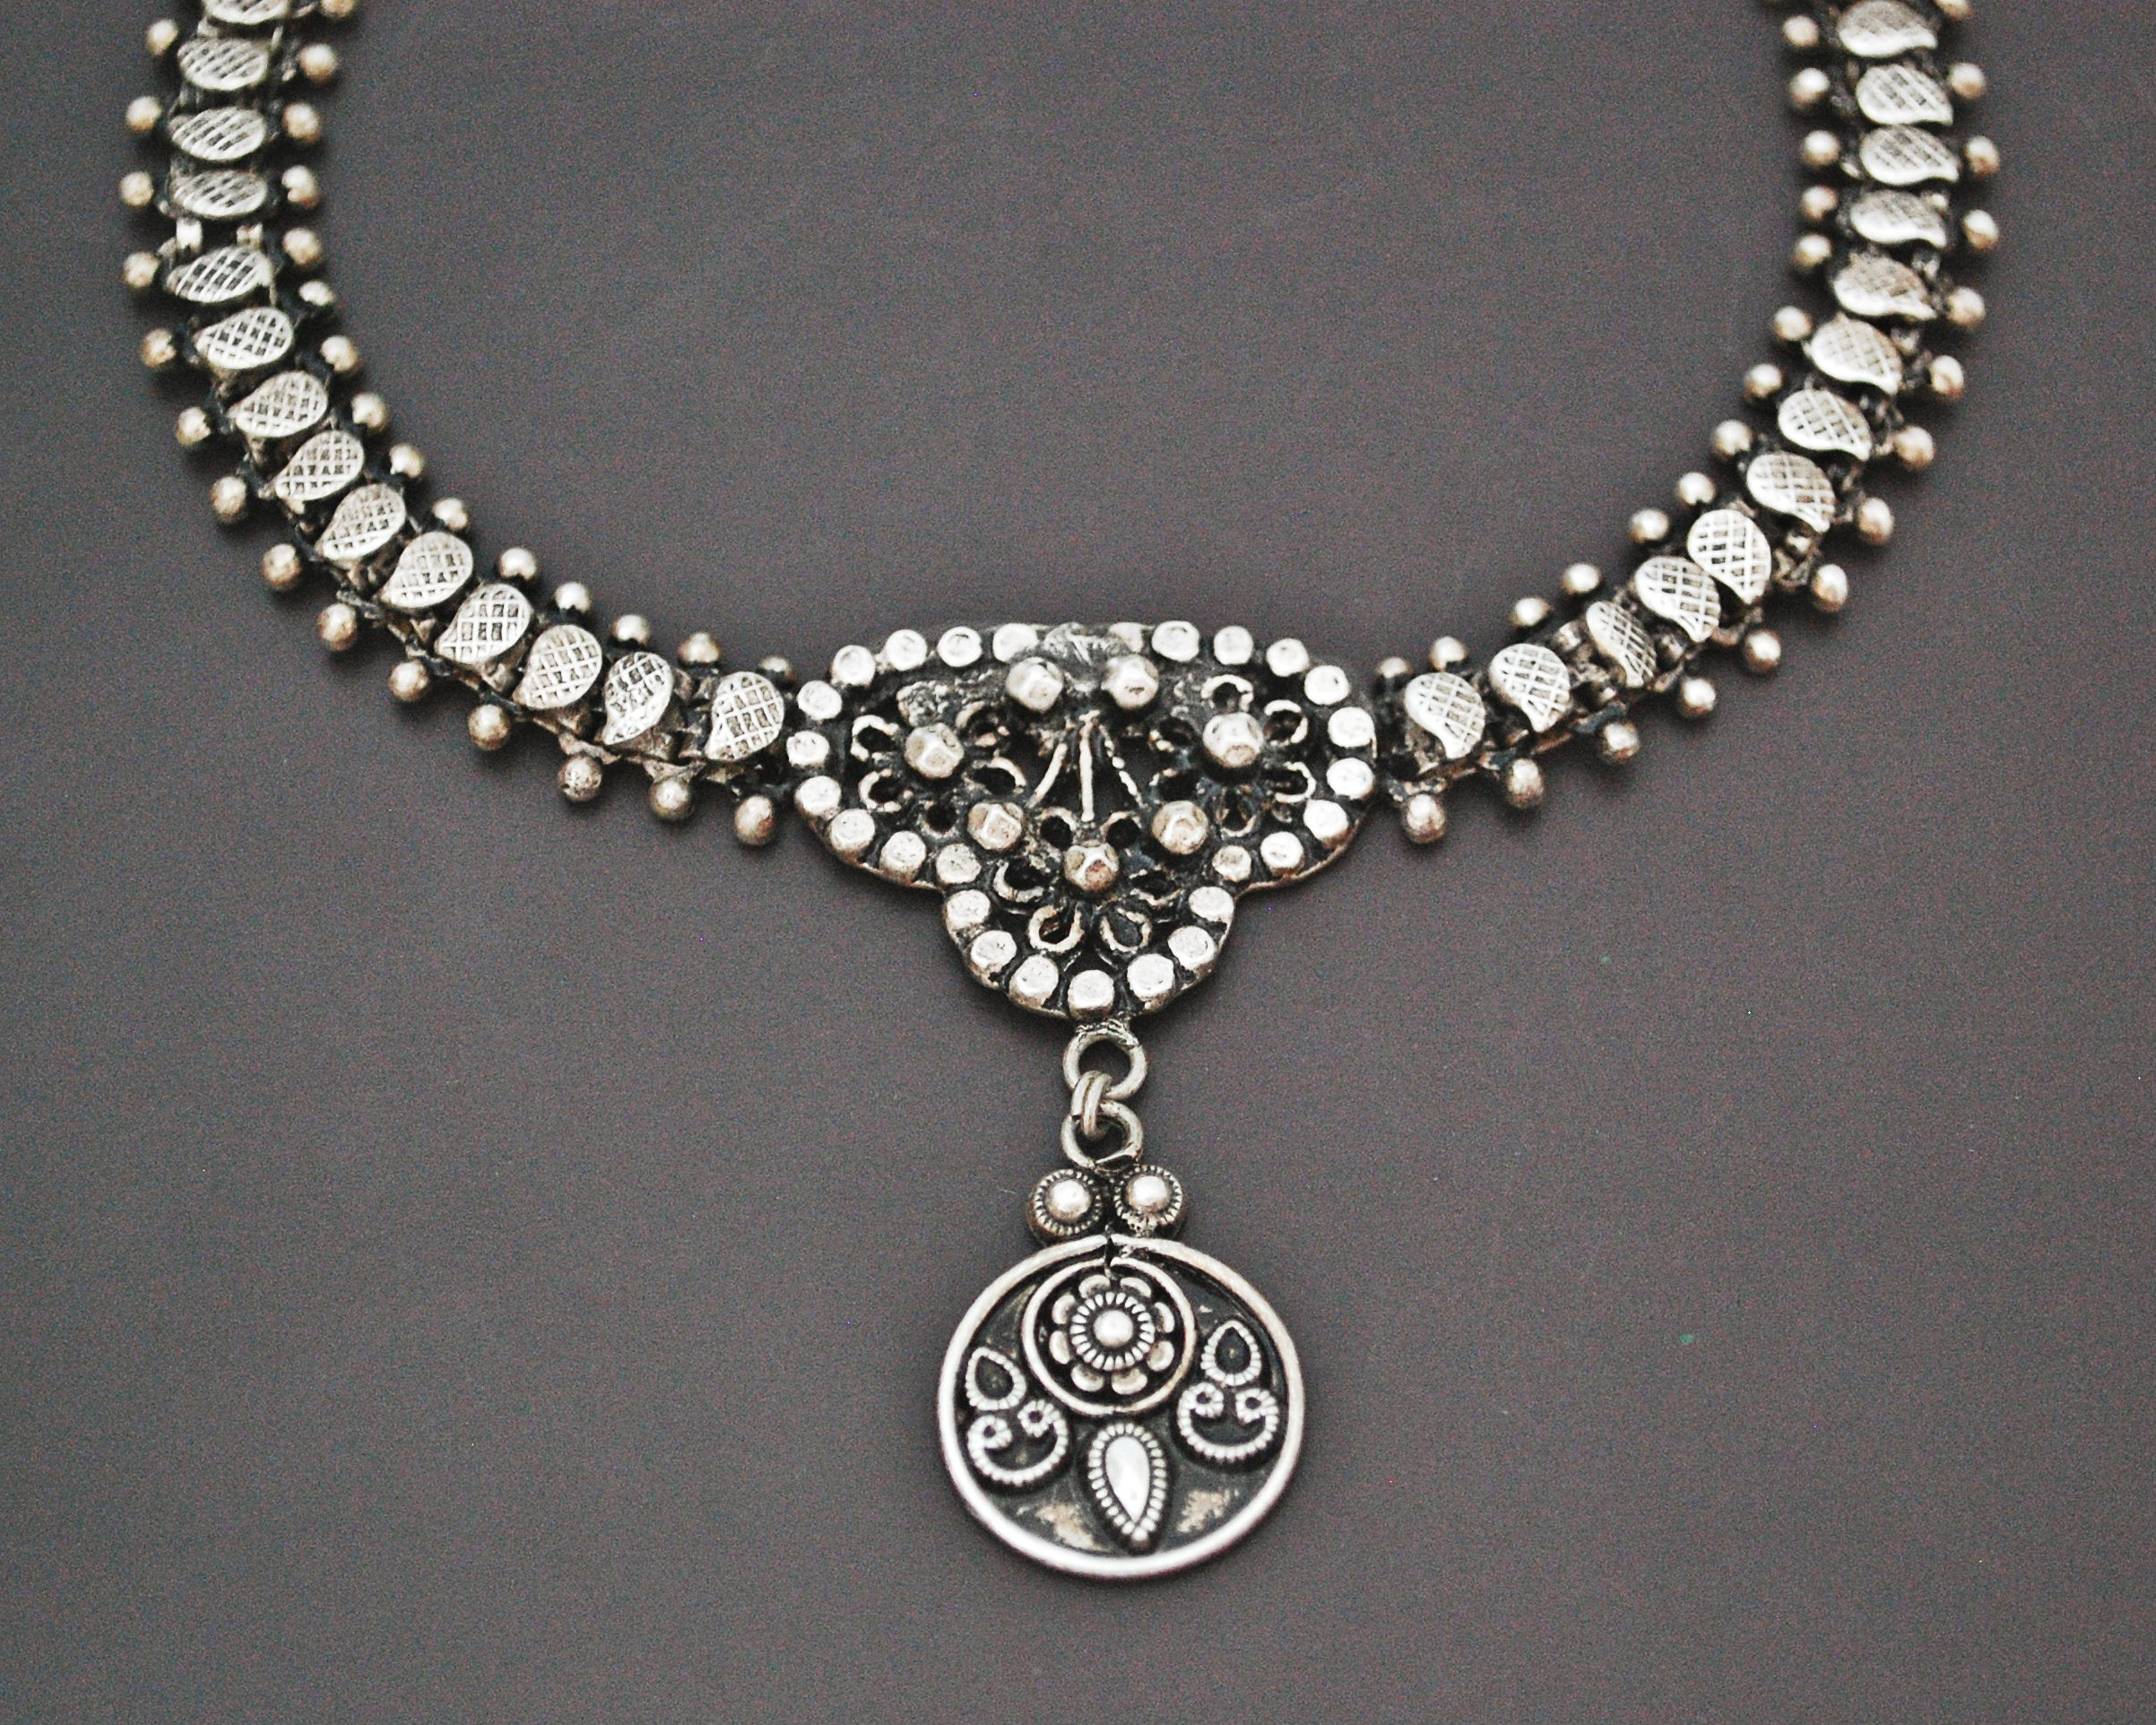 Rajasthani Silver Choker Necklace